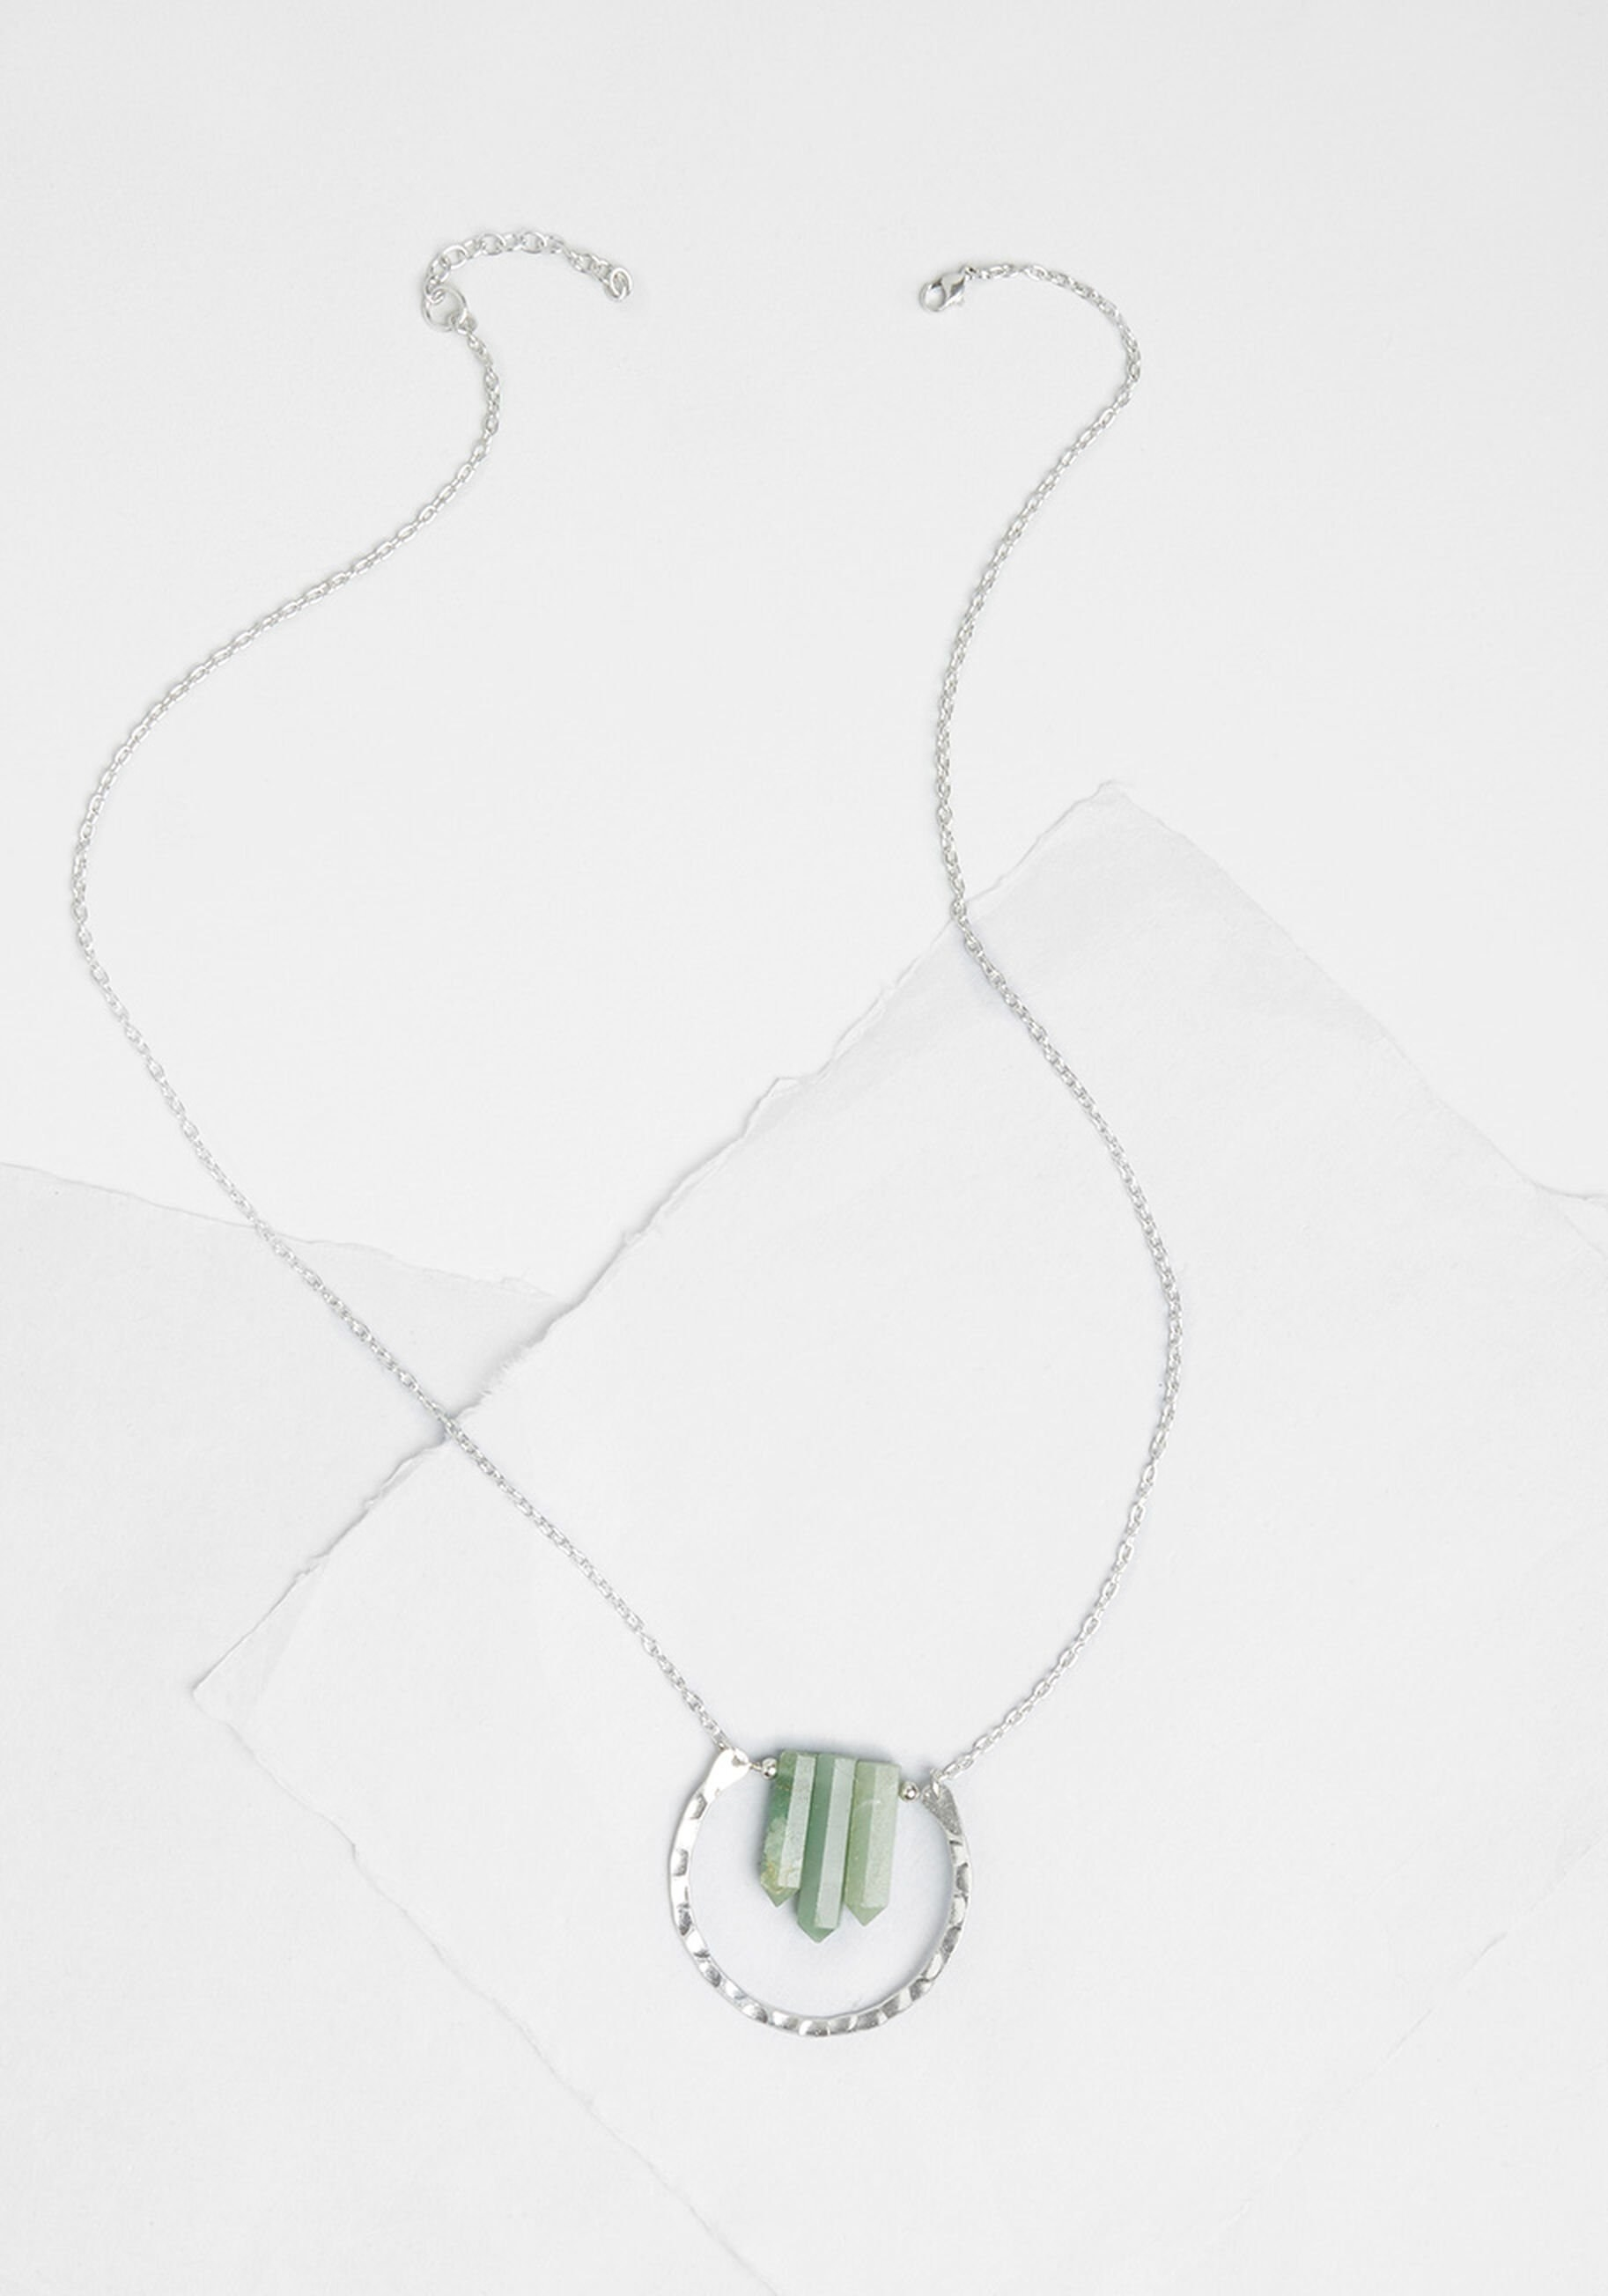 the silver necklace with a horseshoe-shaped hoop and three small jade colored crystals in the middle